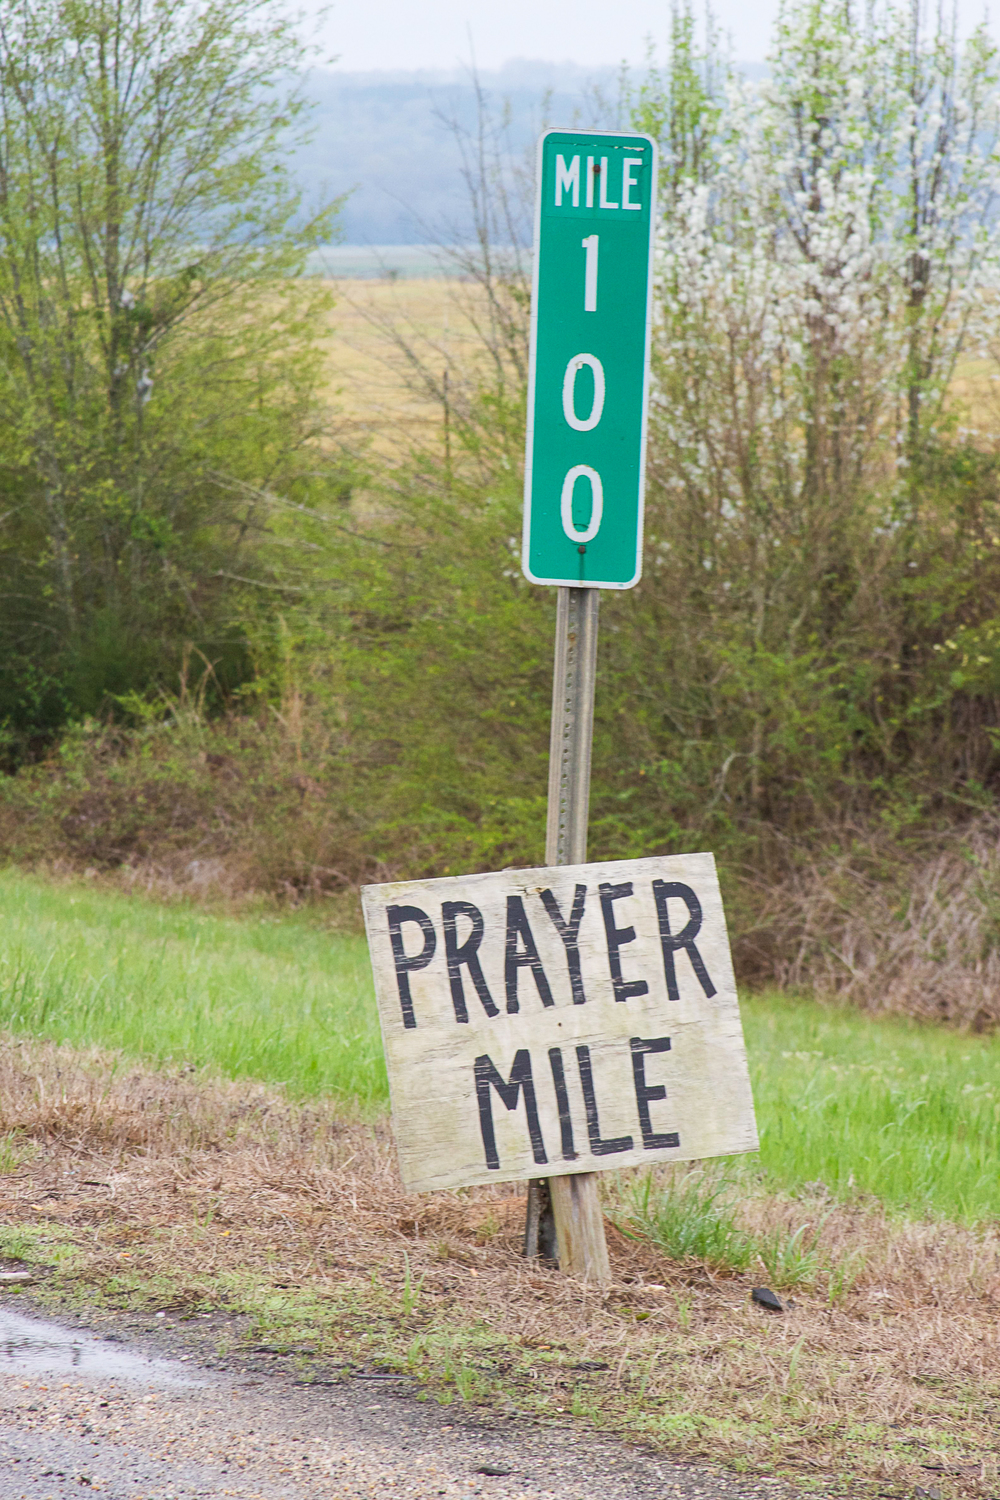 A sign left on U.S. Highway 80 in Lowndes County, Alabama. Photo by Lauren S. Hughes.